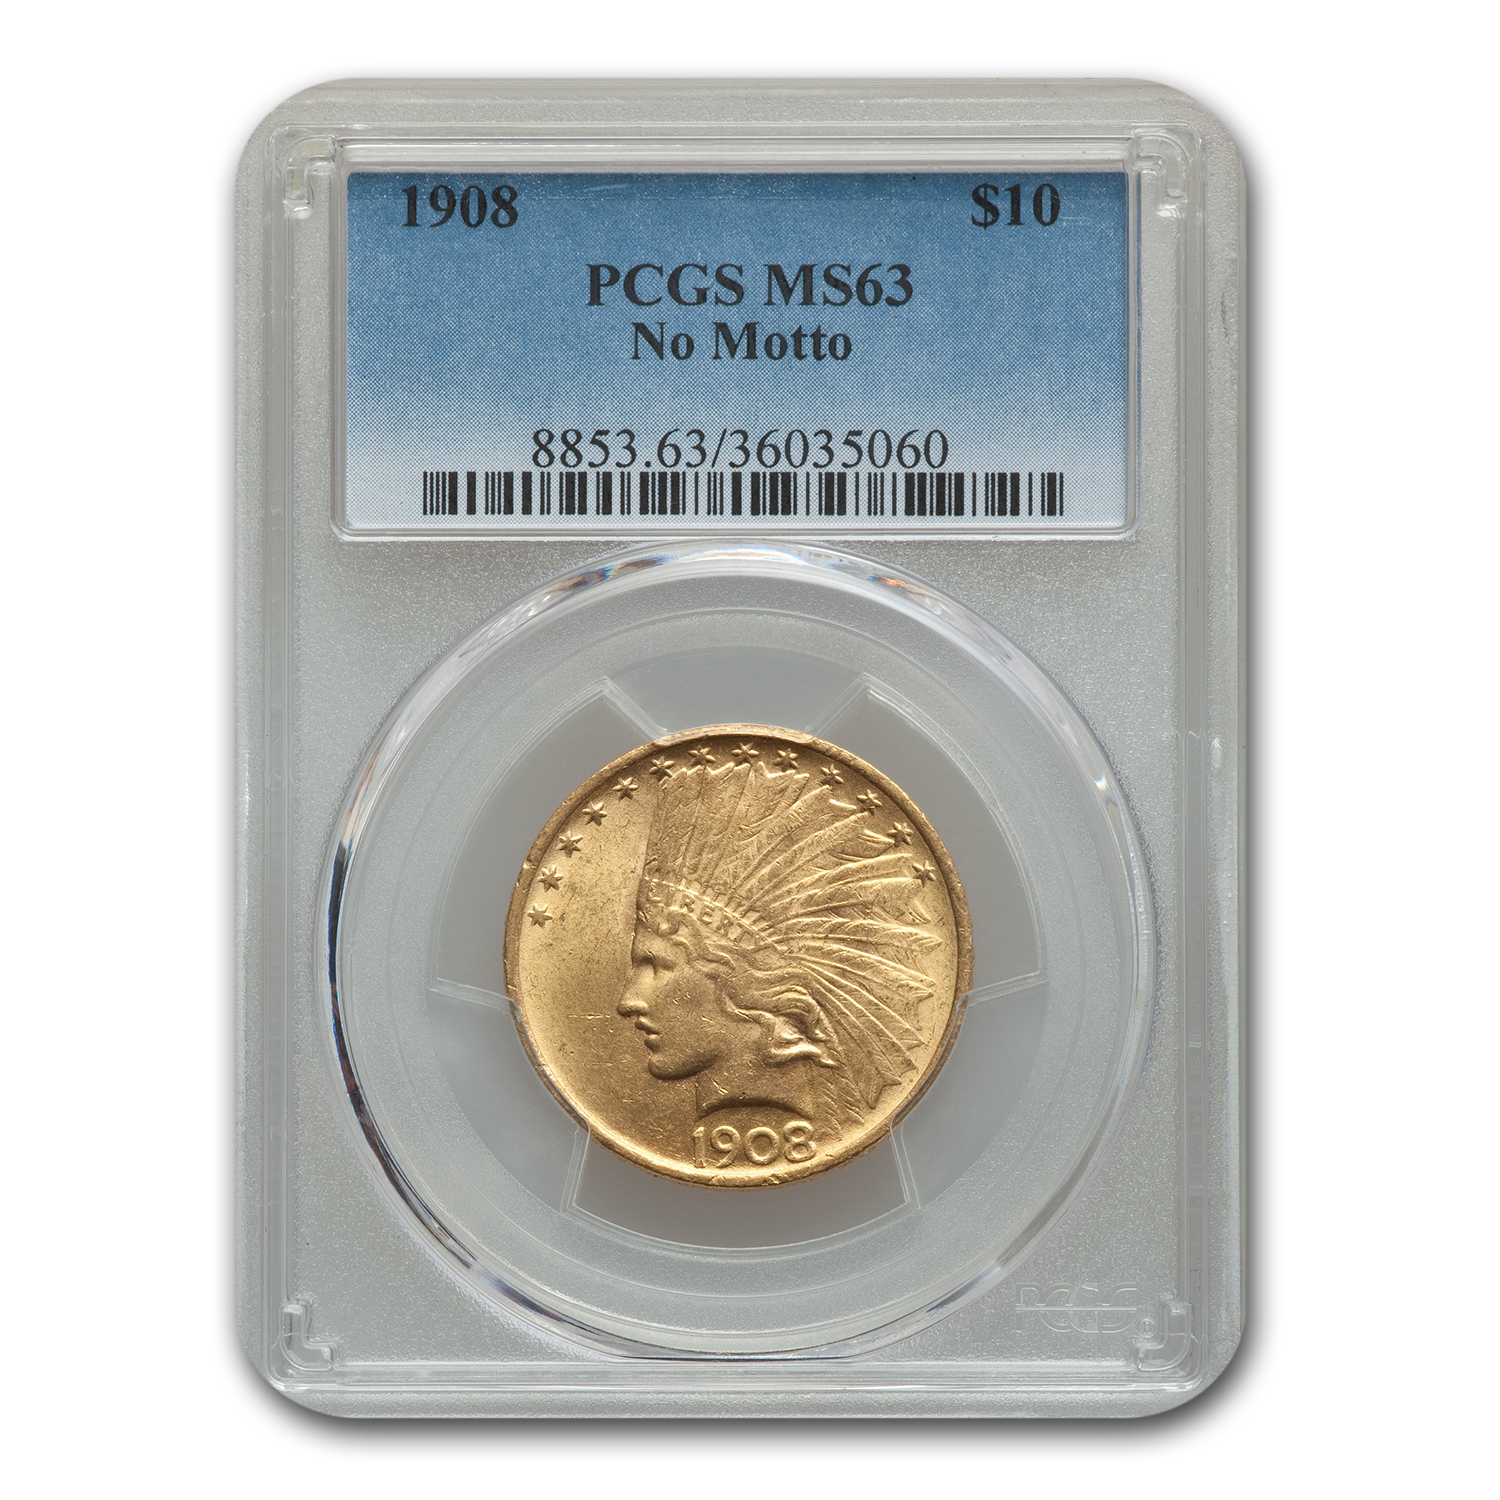 1908 $10 Indian Gold Eagle No Motto MS-63 PCGS